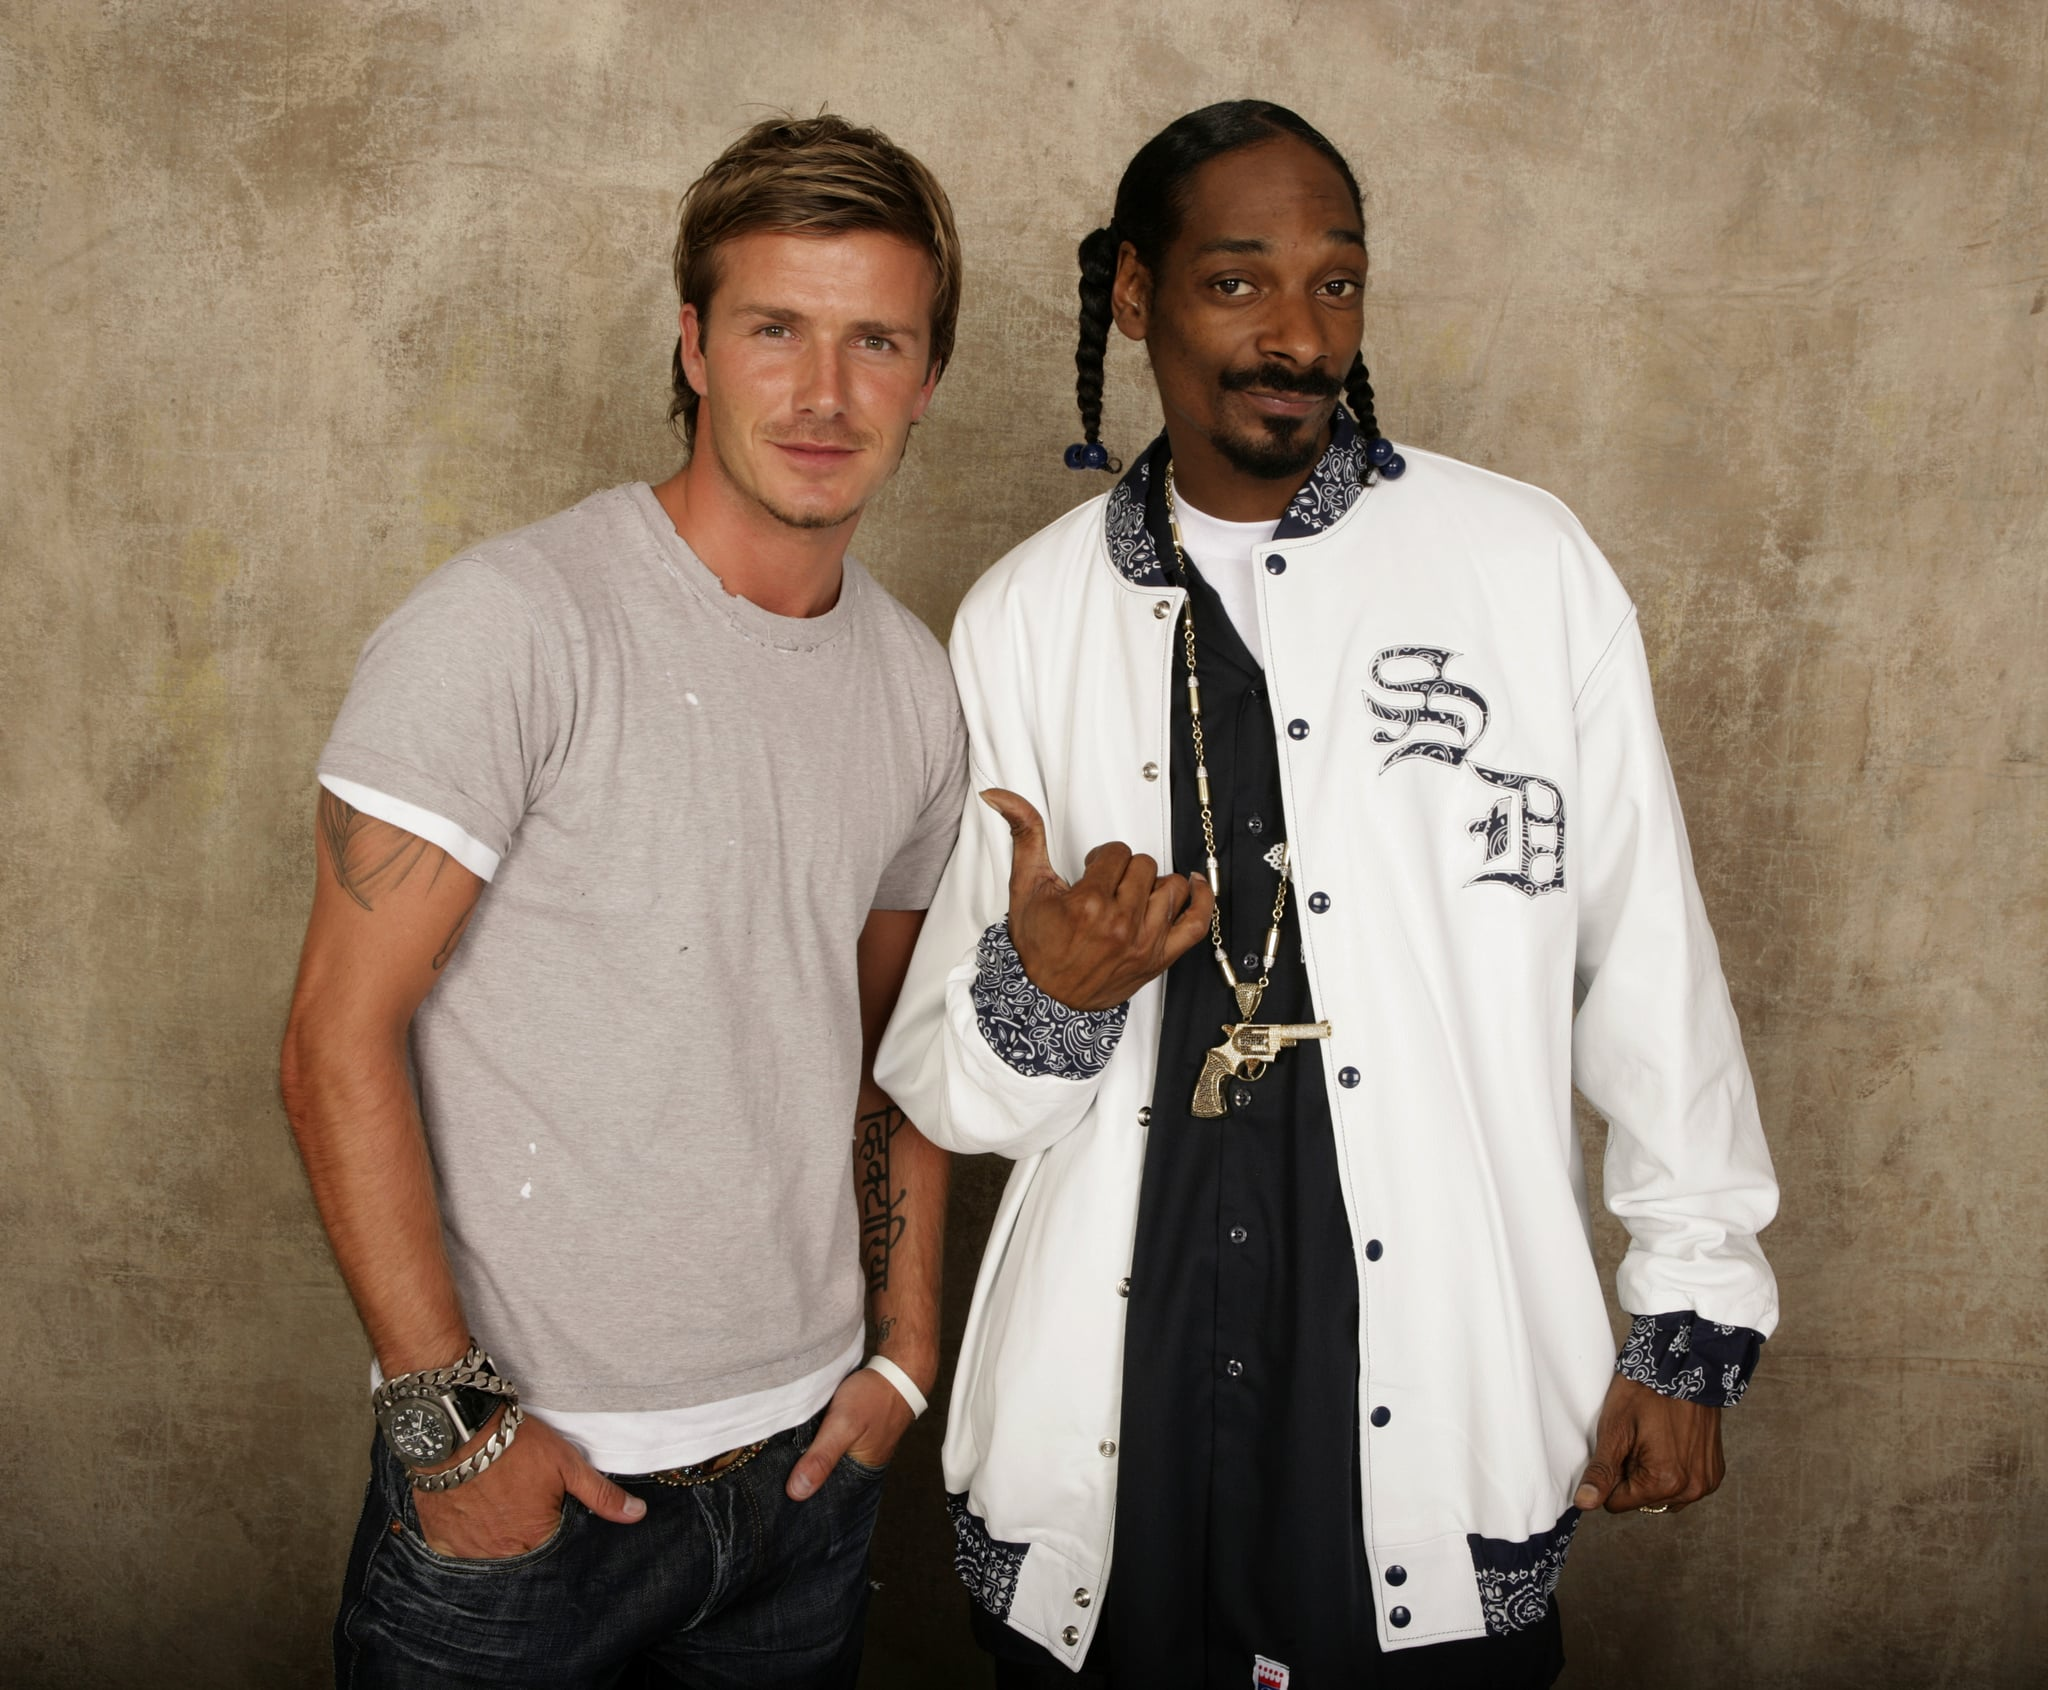 David Beckham and Snoop Dogg